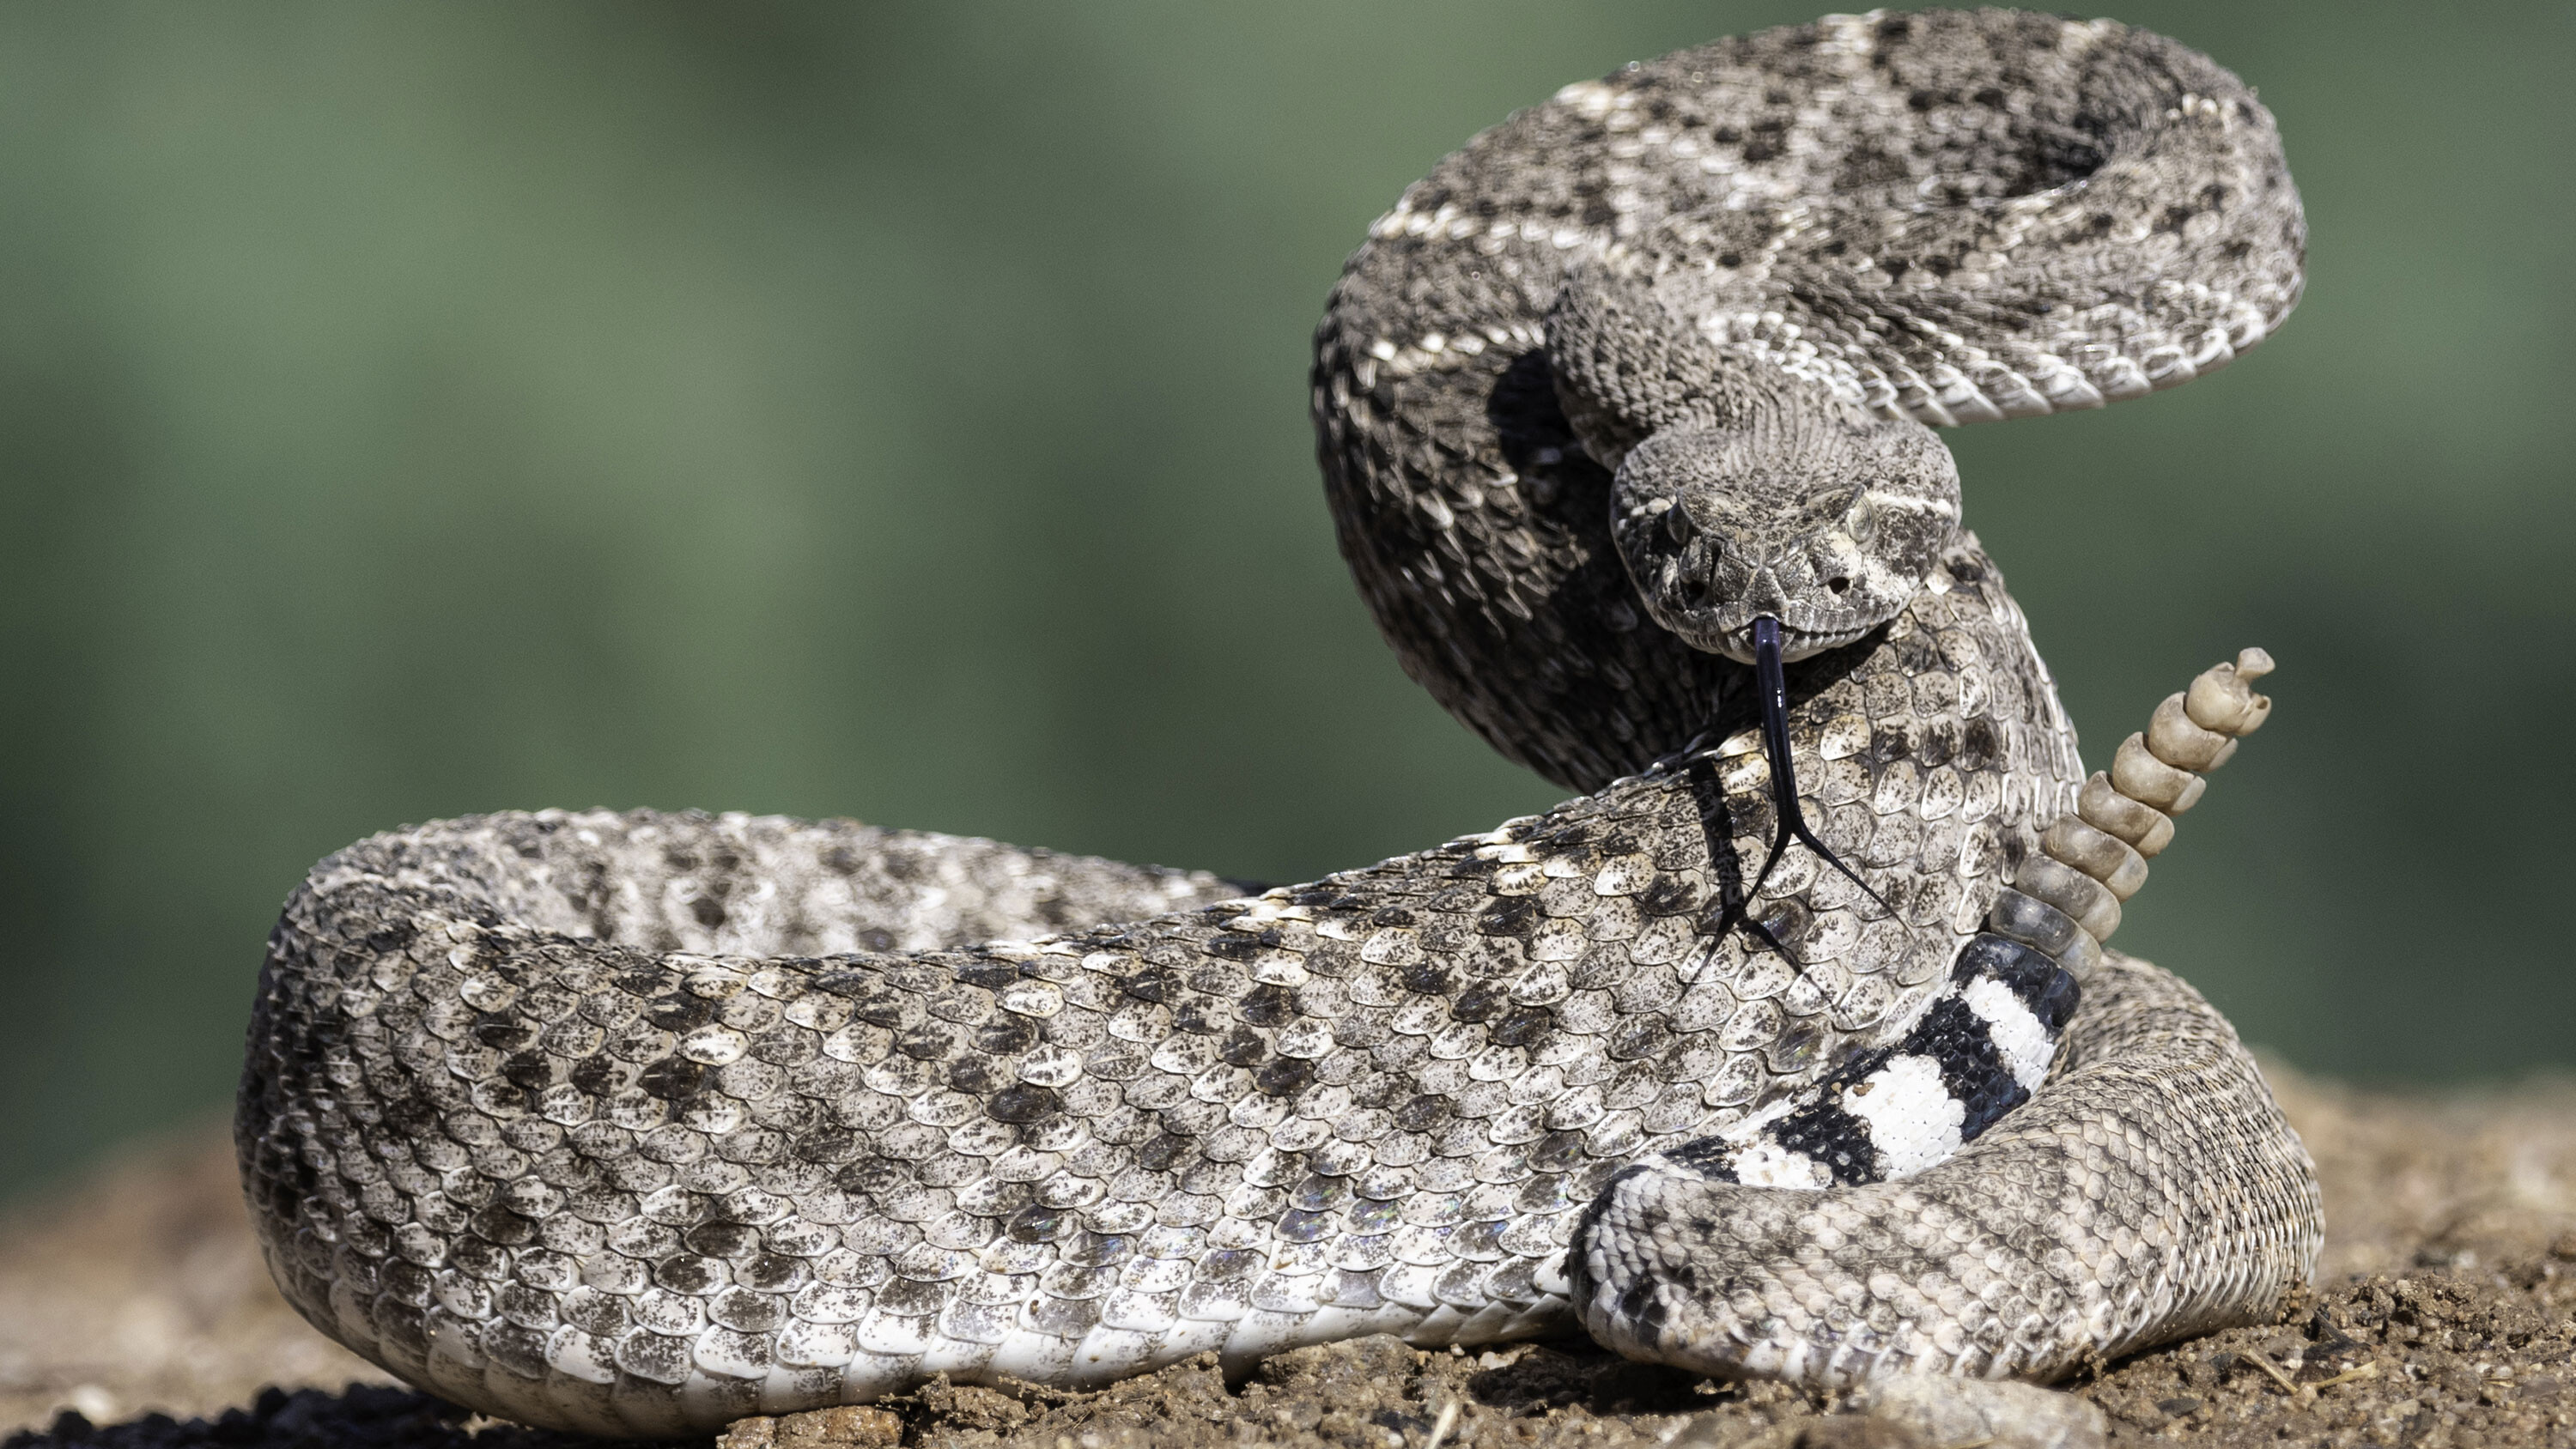 Rattlesnakes change their rattle frequency based on nearby threats, a study finds